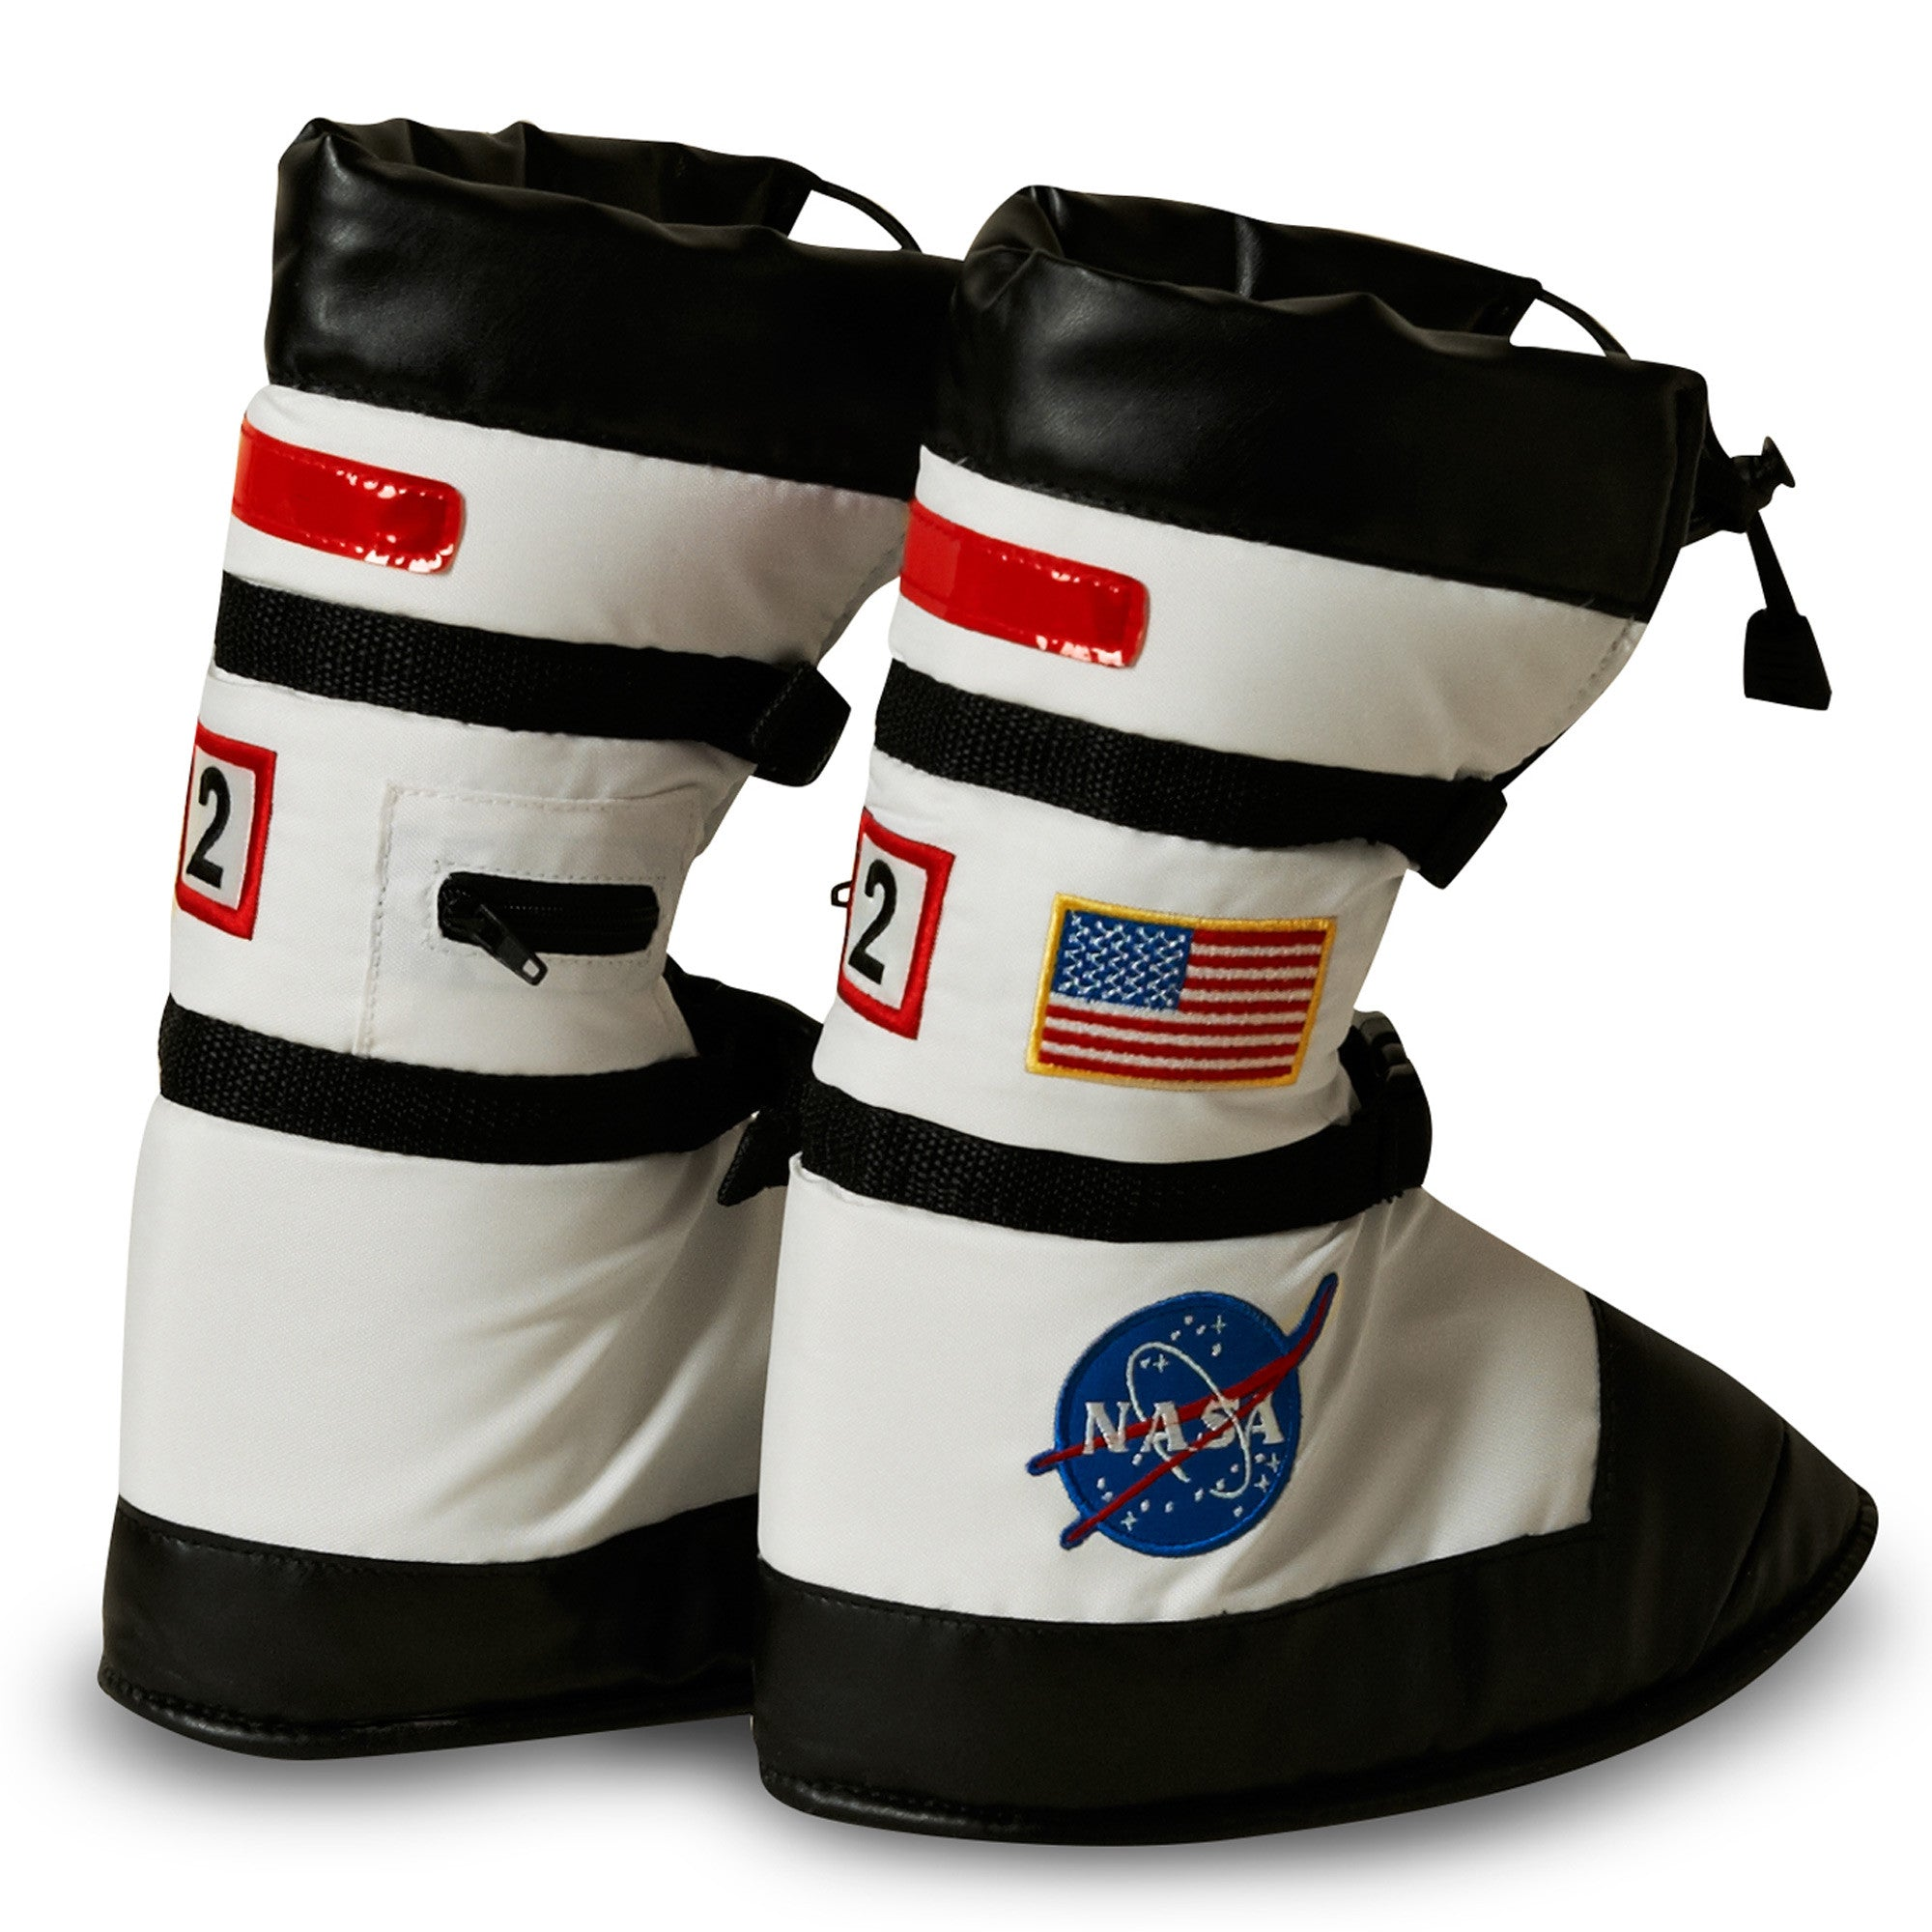 Astronaut Boots - Pics about space